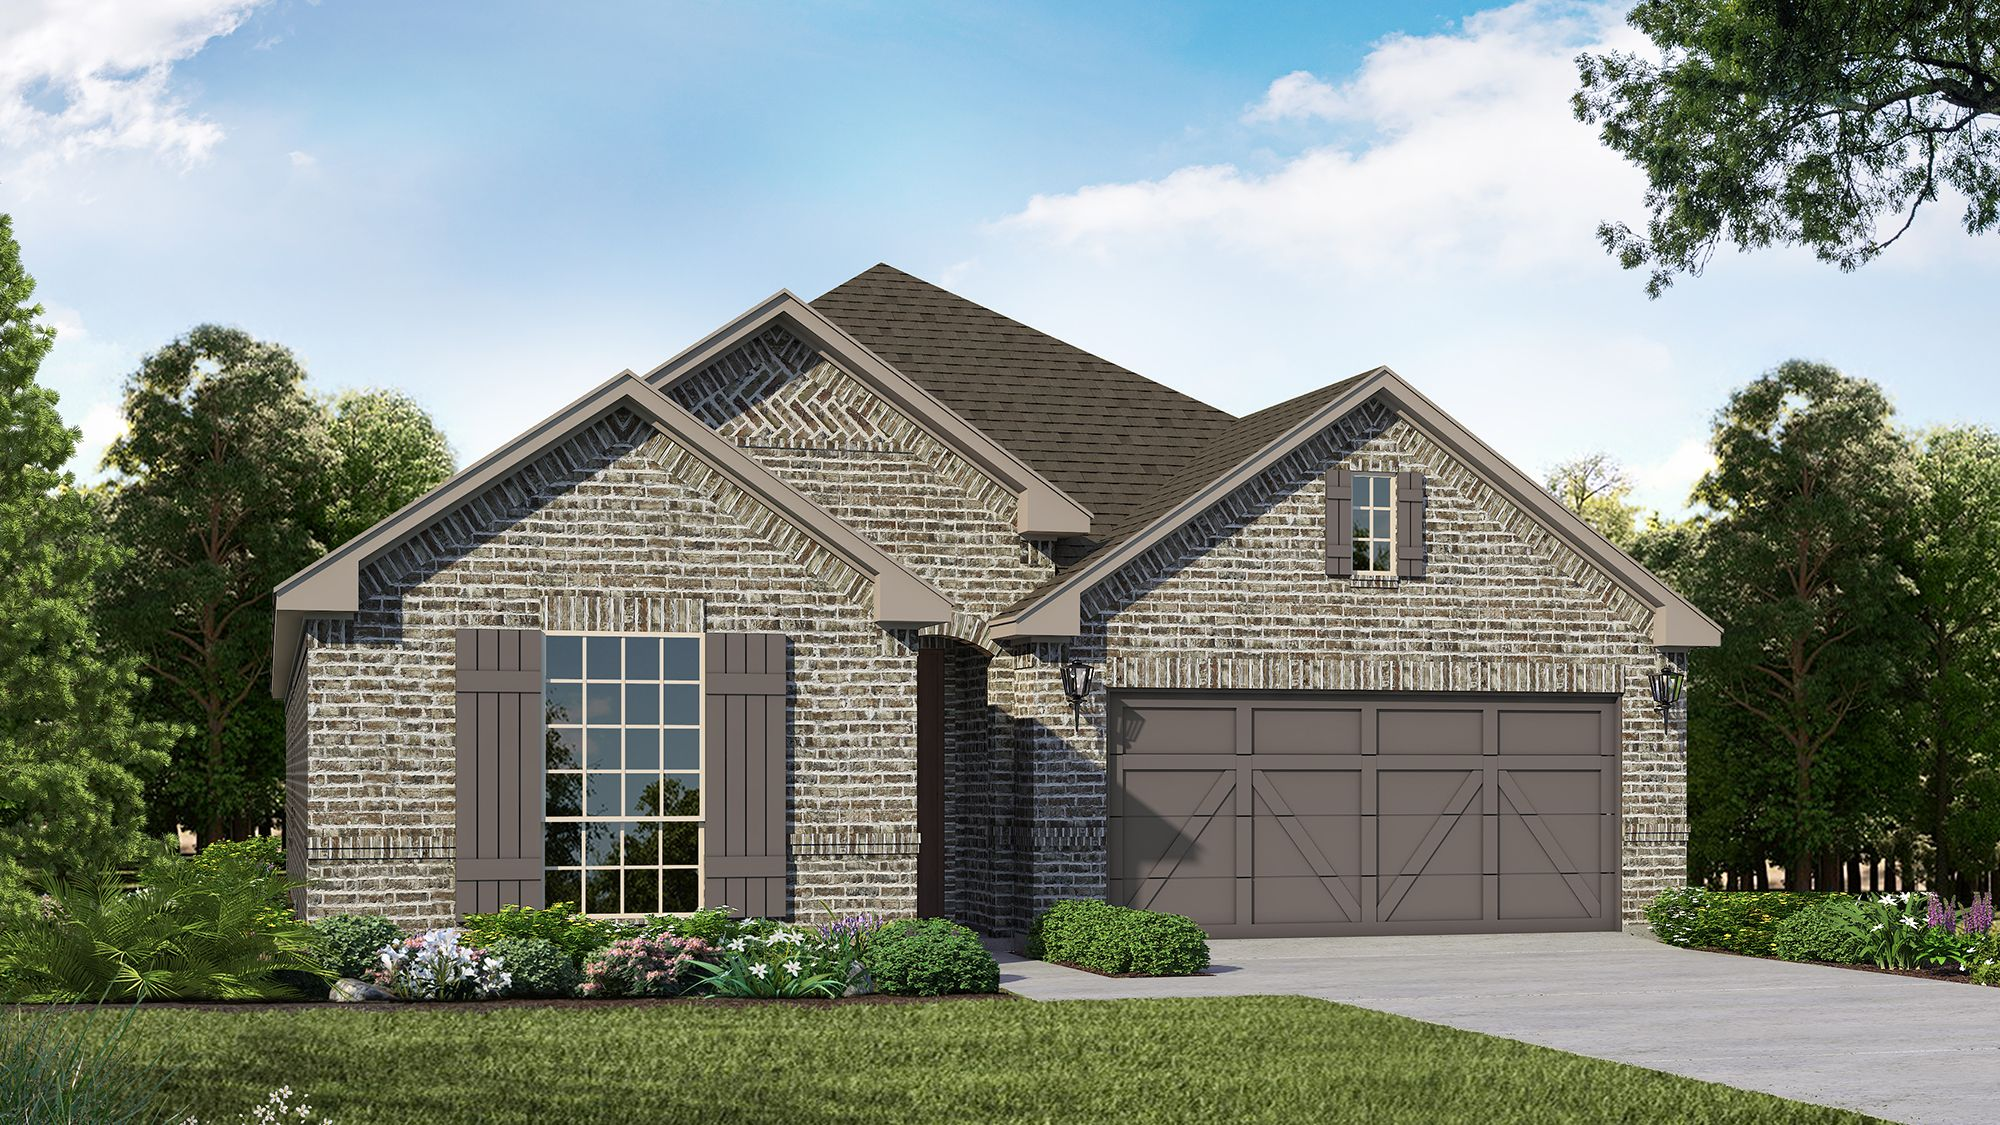 Plan 1521 Elevation A by American Legend Homes